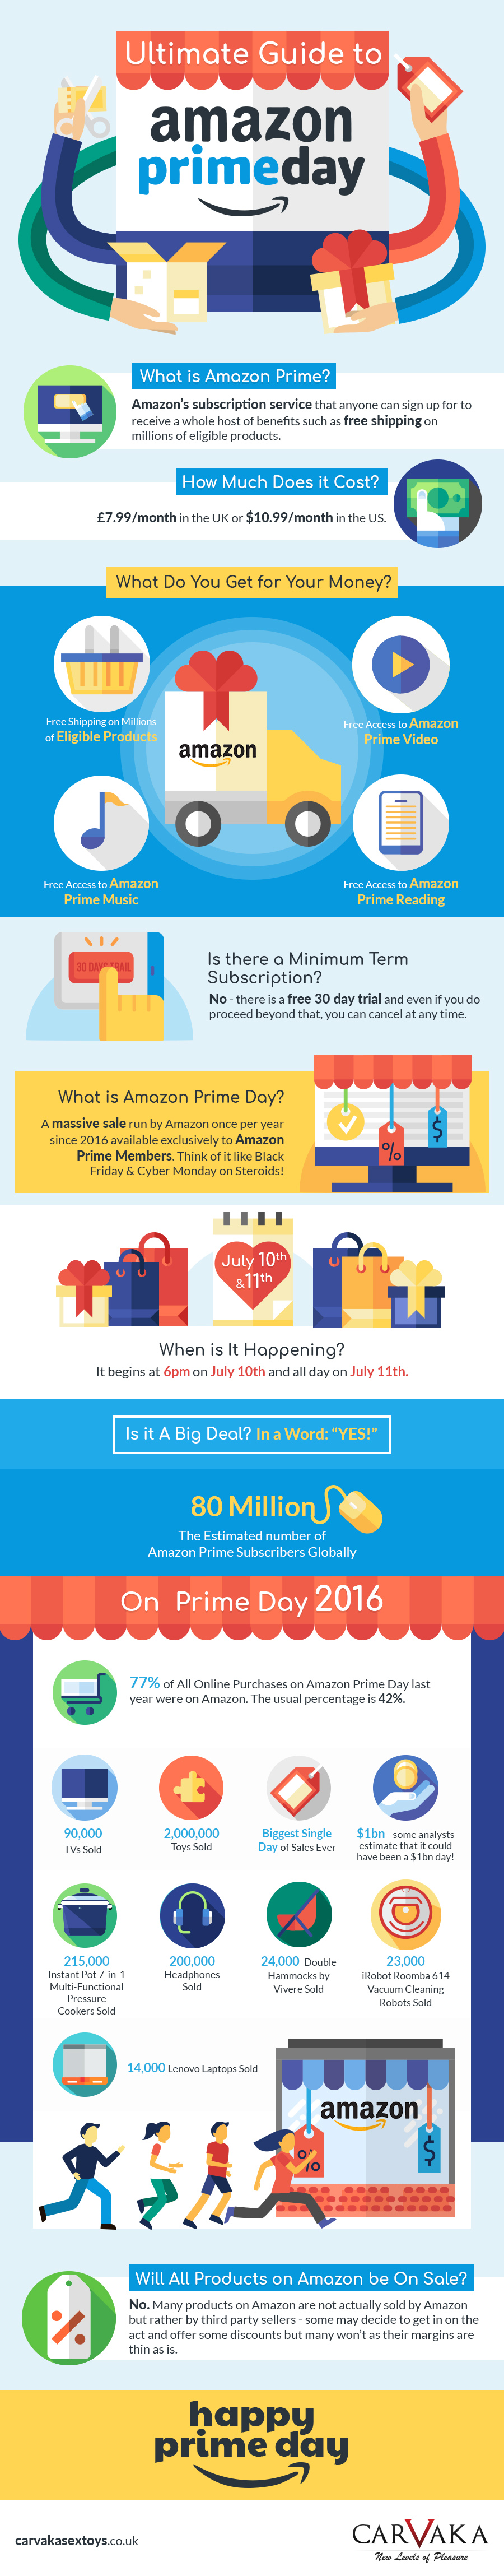 Ultimate Guide To Amazon Prime Day 365 Retail Retail News